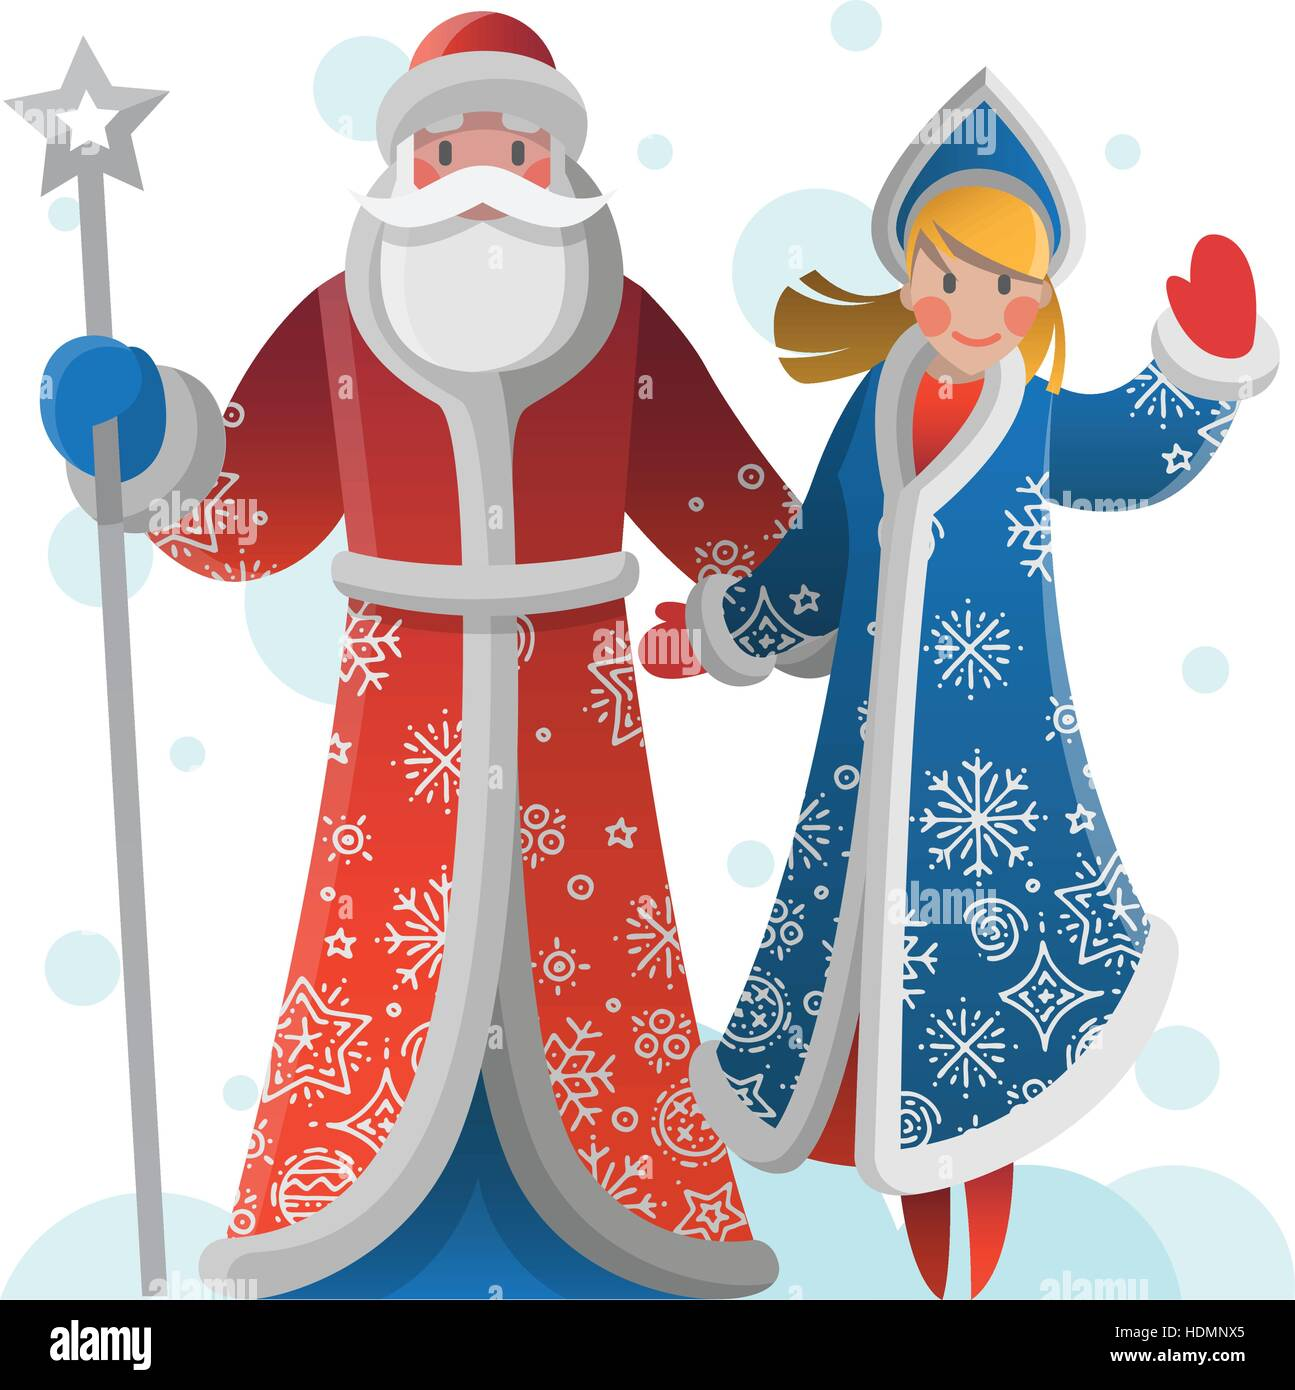 new year greeting card with cartoon father frost and snow maiden christmas gift card with santa claus winter holiday xmas postcard with ded moroz an